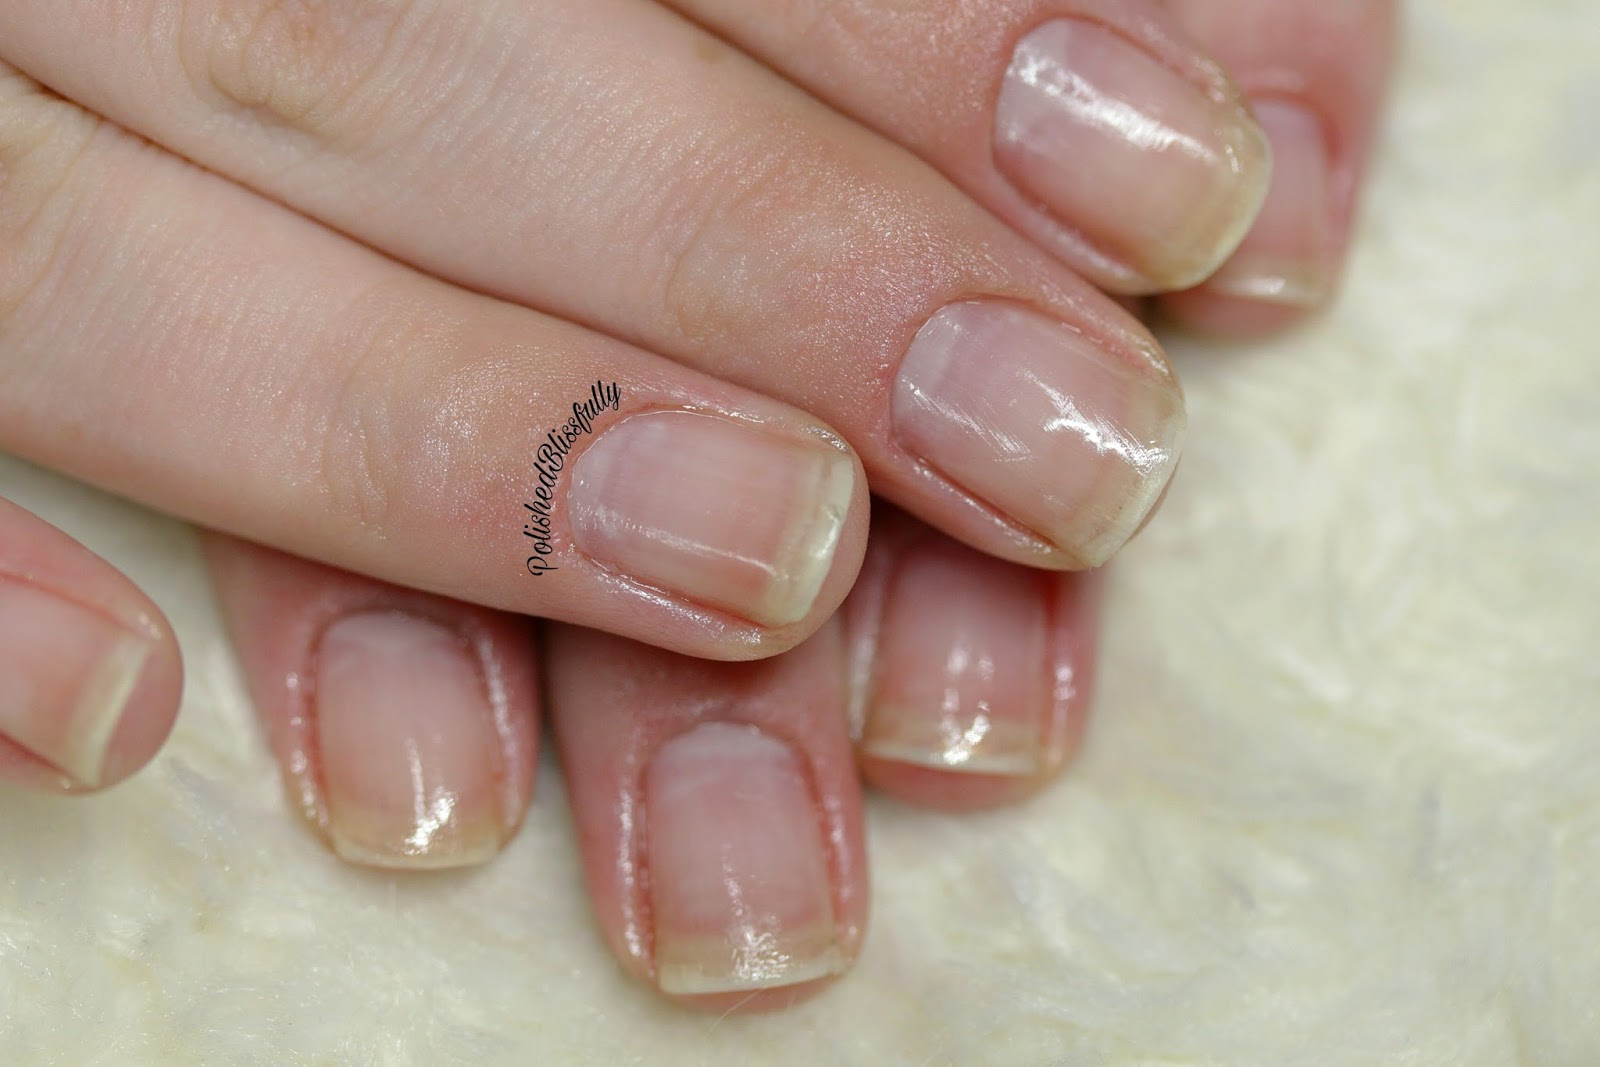 polishedblissfully: Quick nail prep for better application of nail ...